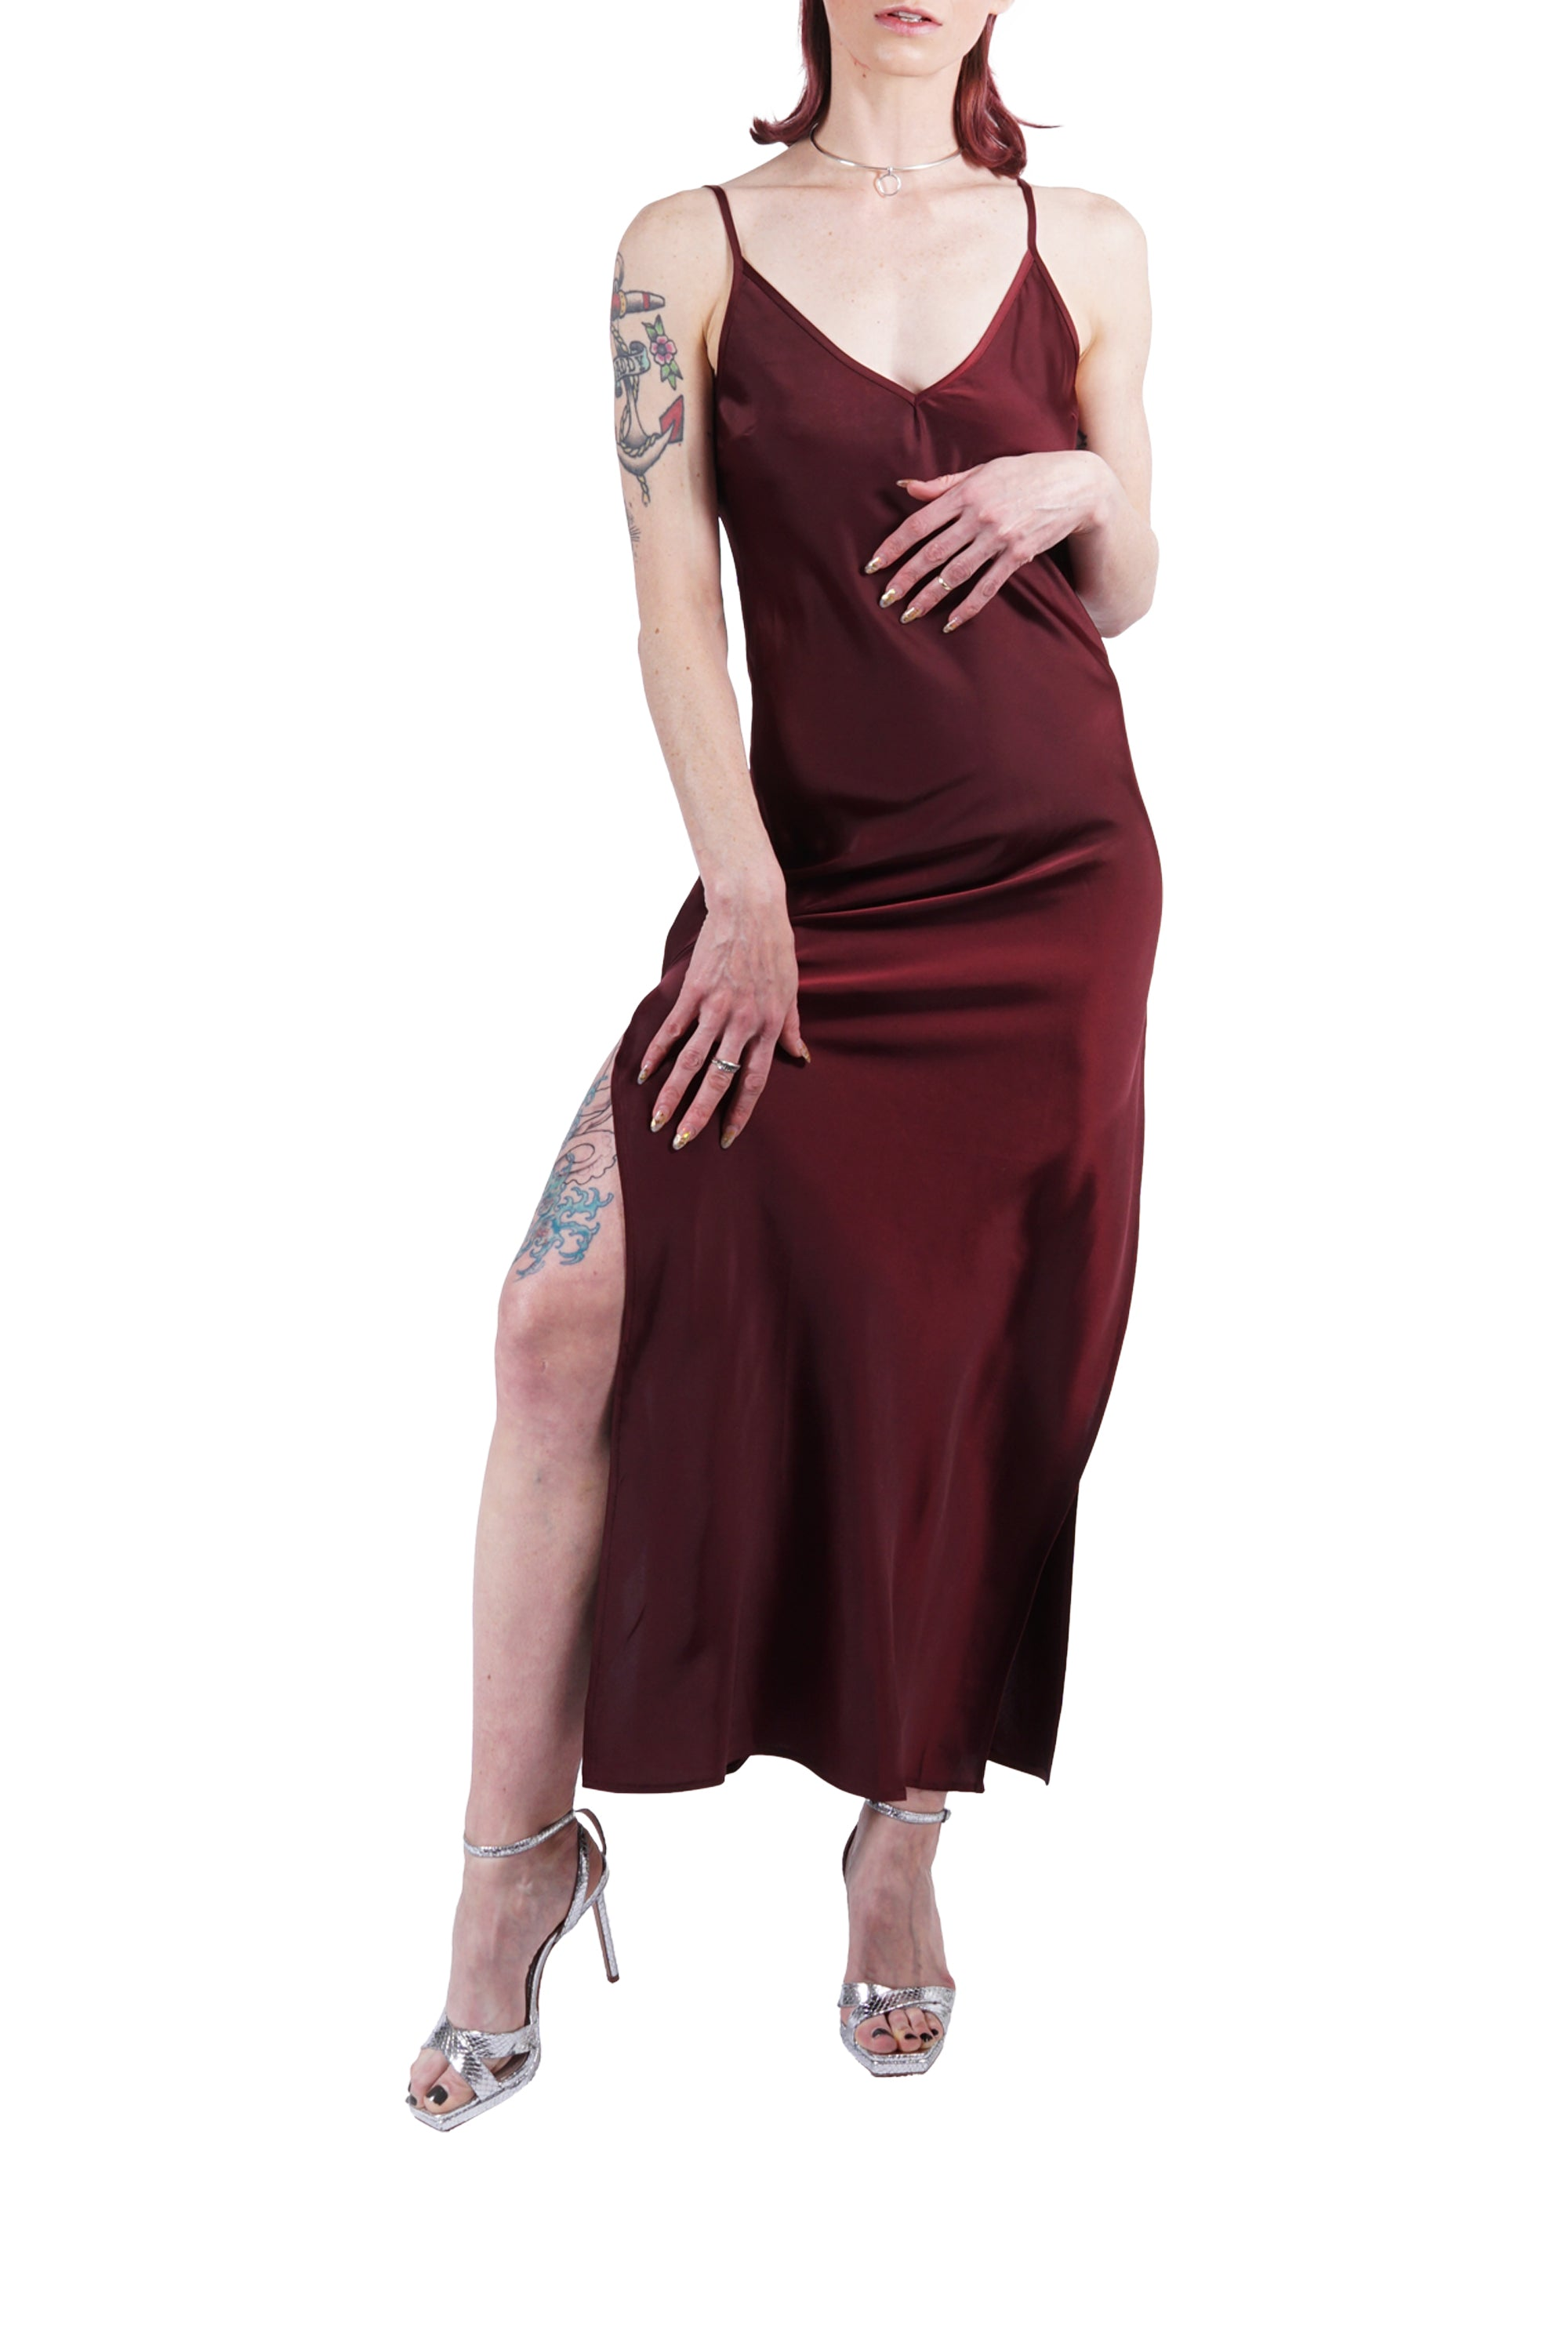 Cranberry Slit Dress